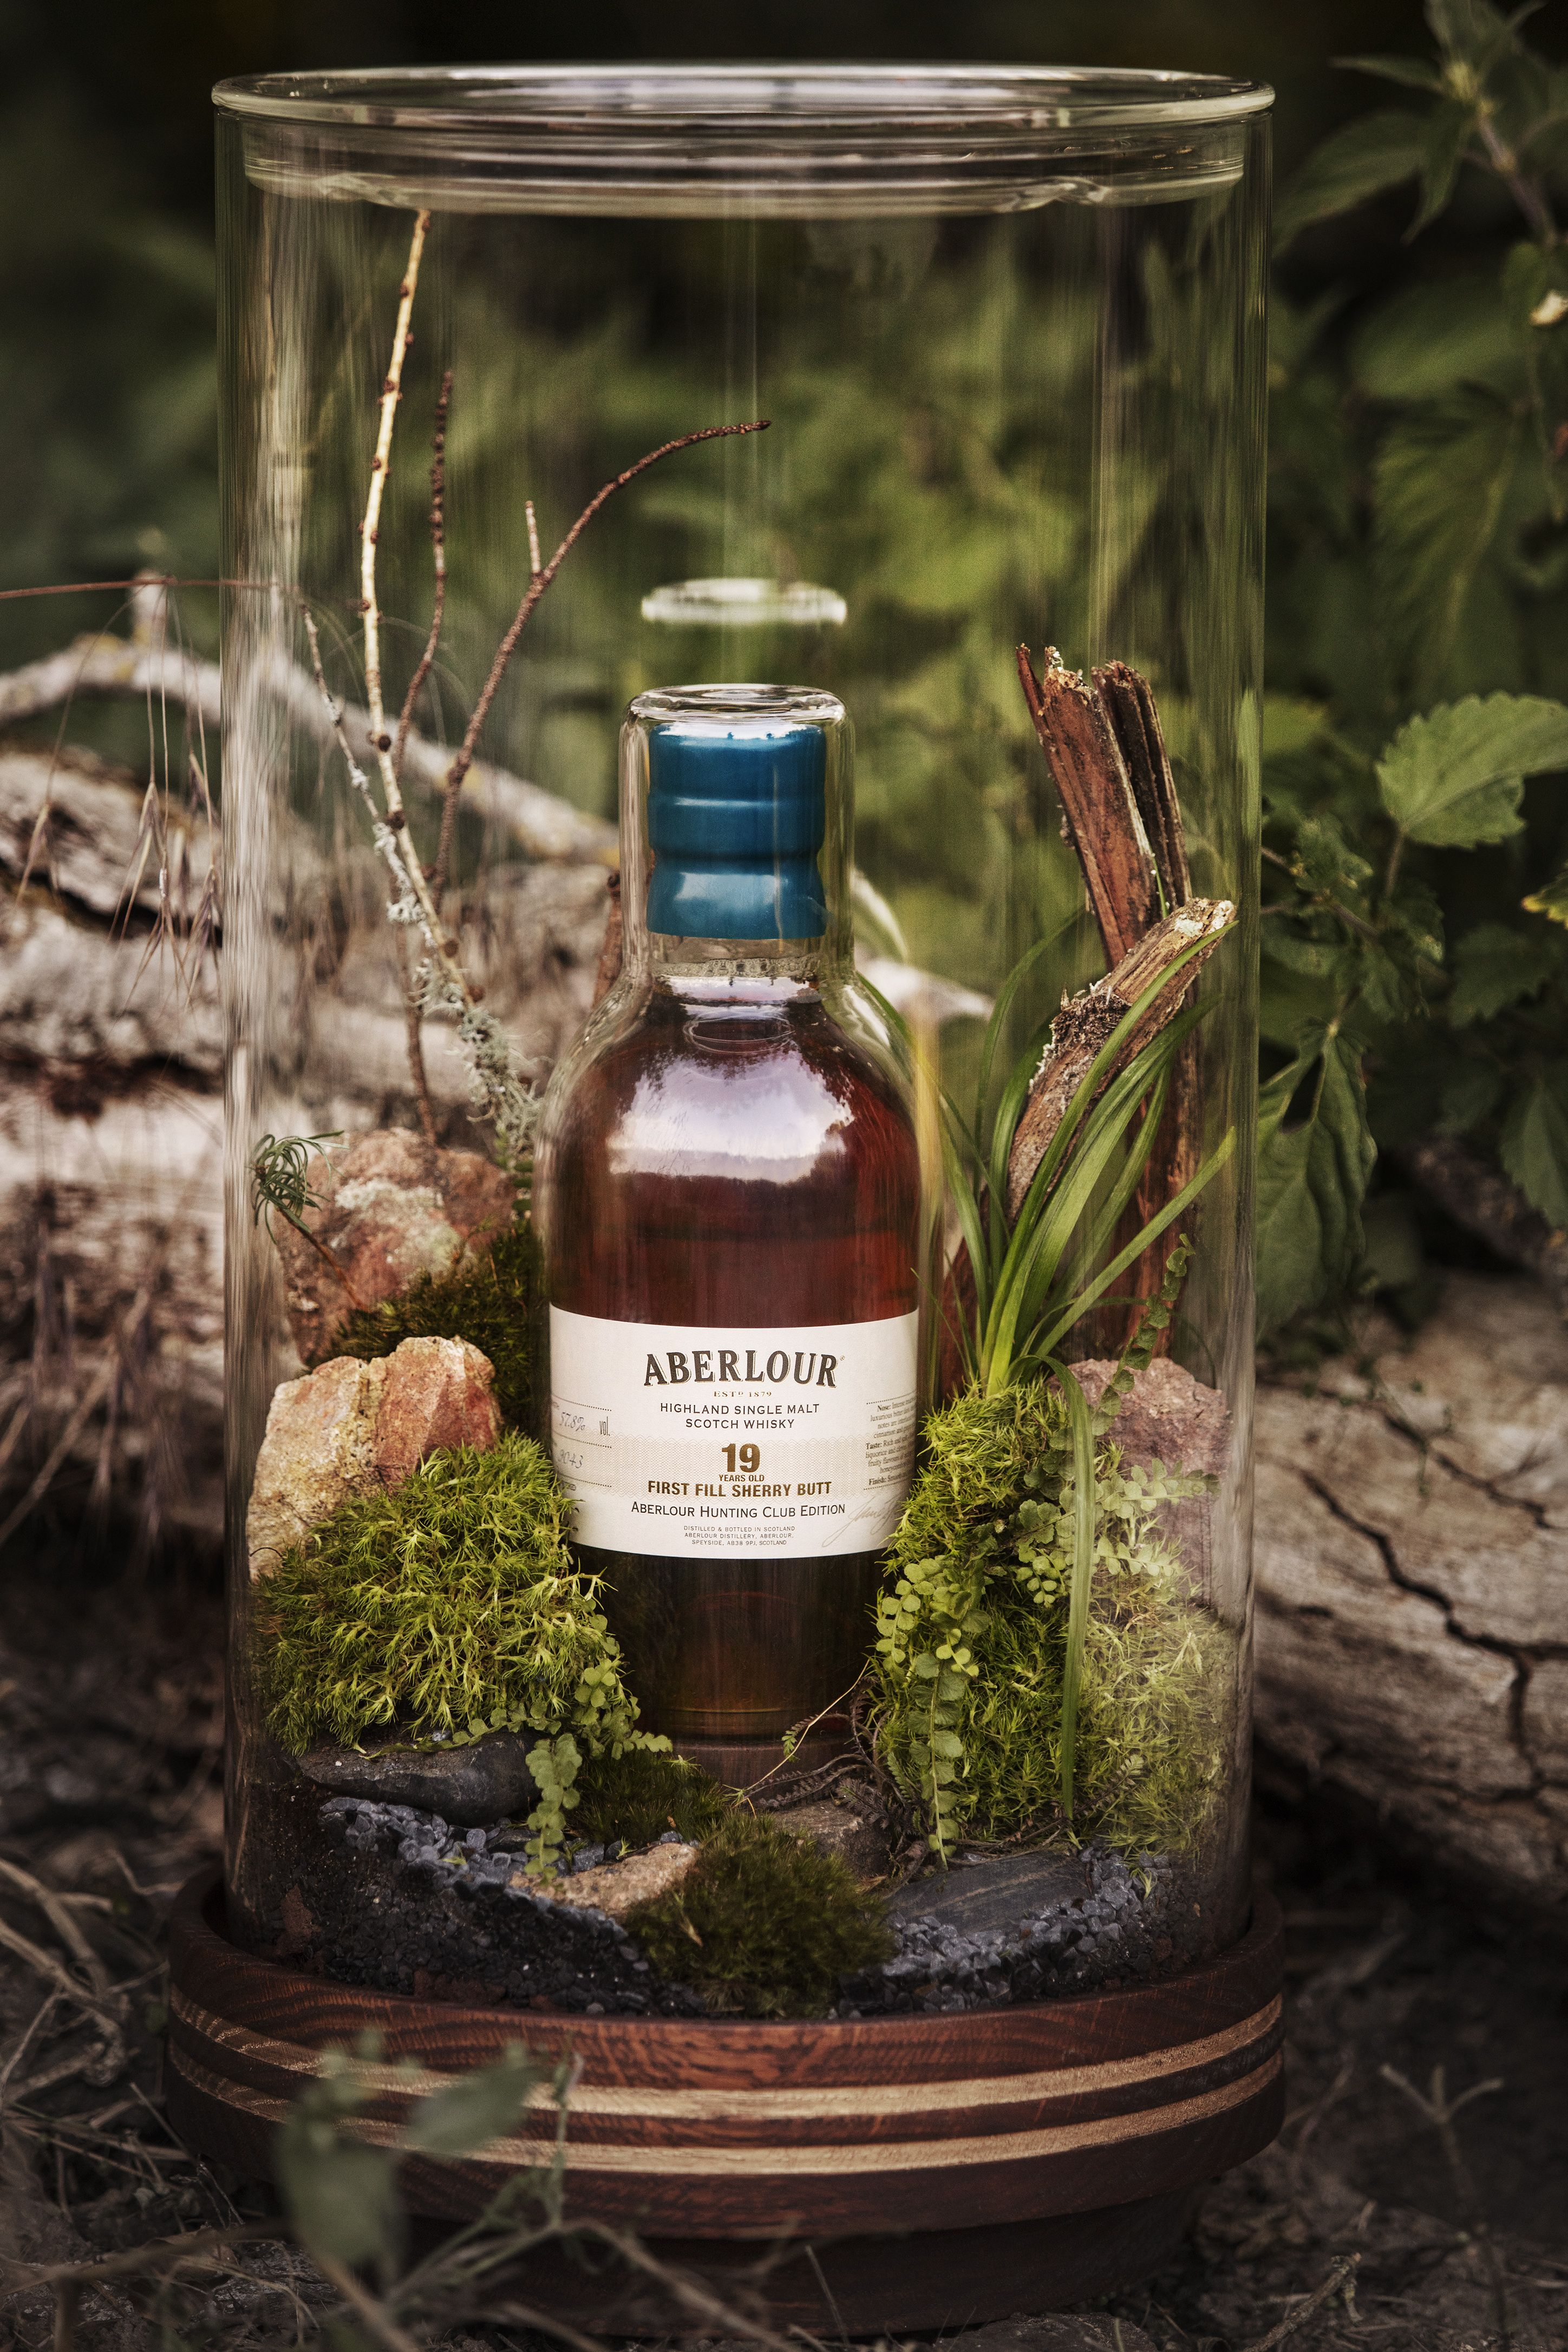 Beautiful Terrarium for Aberlour by Guillaume Demont | /open | Pinterest